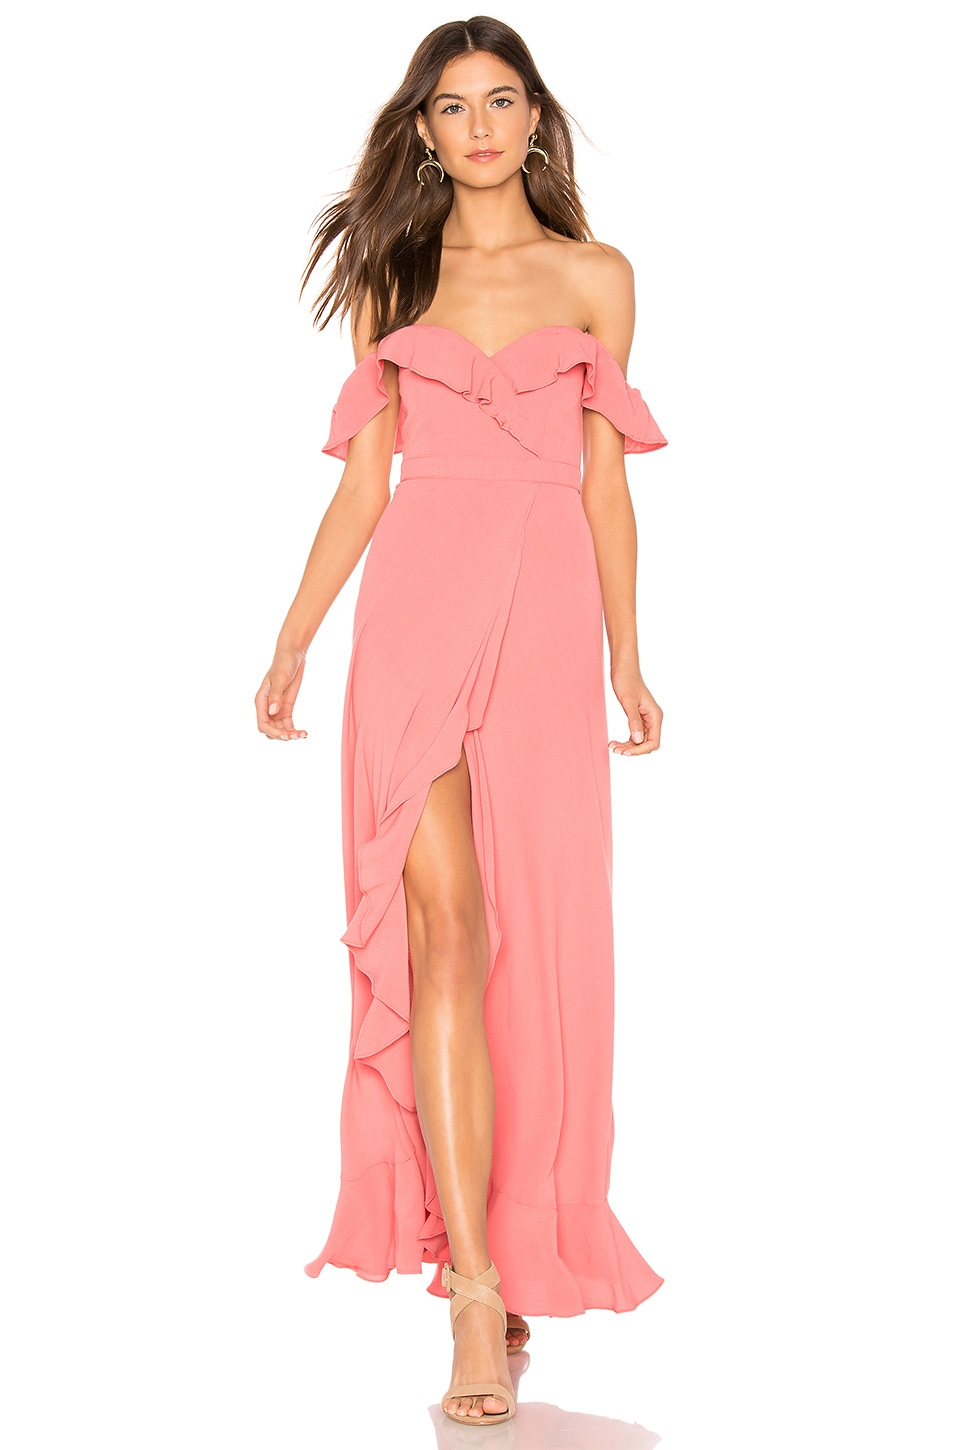 FLYNN SKYE Monica Maxi Dress in Watermelon